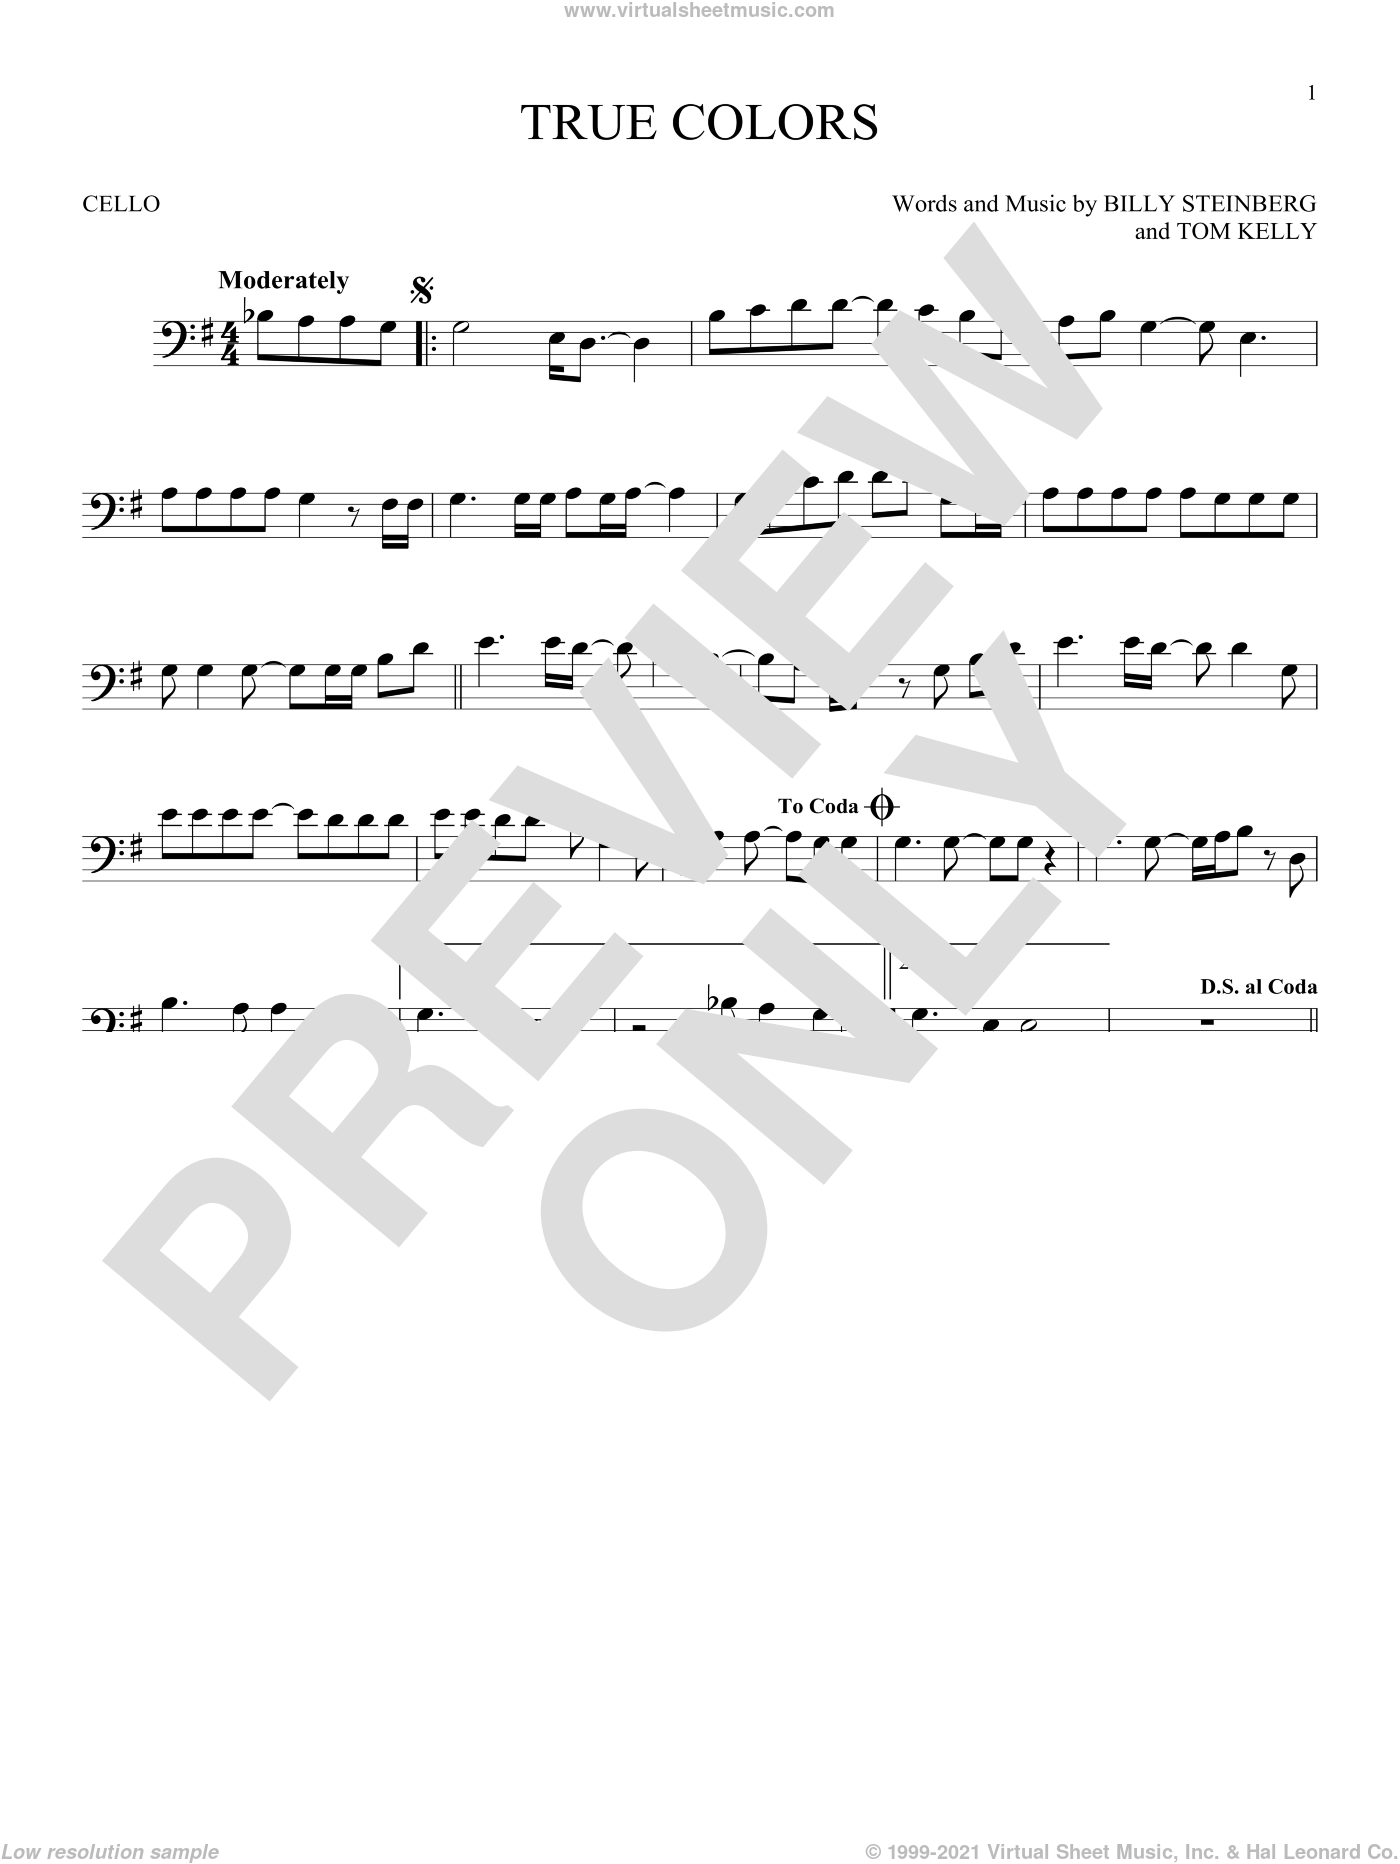 True Colors sheet music for cello solo by Cyndi Lauper, Phil Collins, Billy Steinberg and Tom Kelly, intermediate skill level